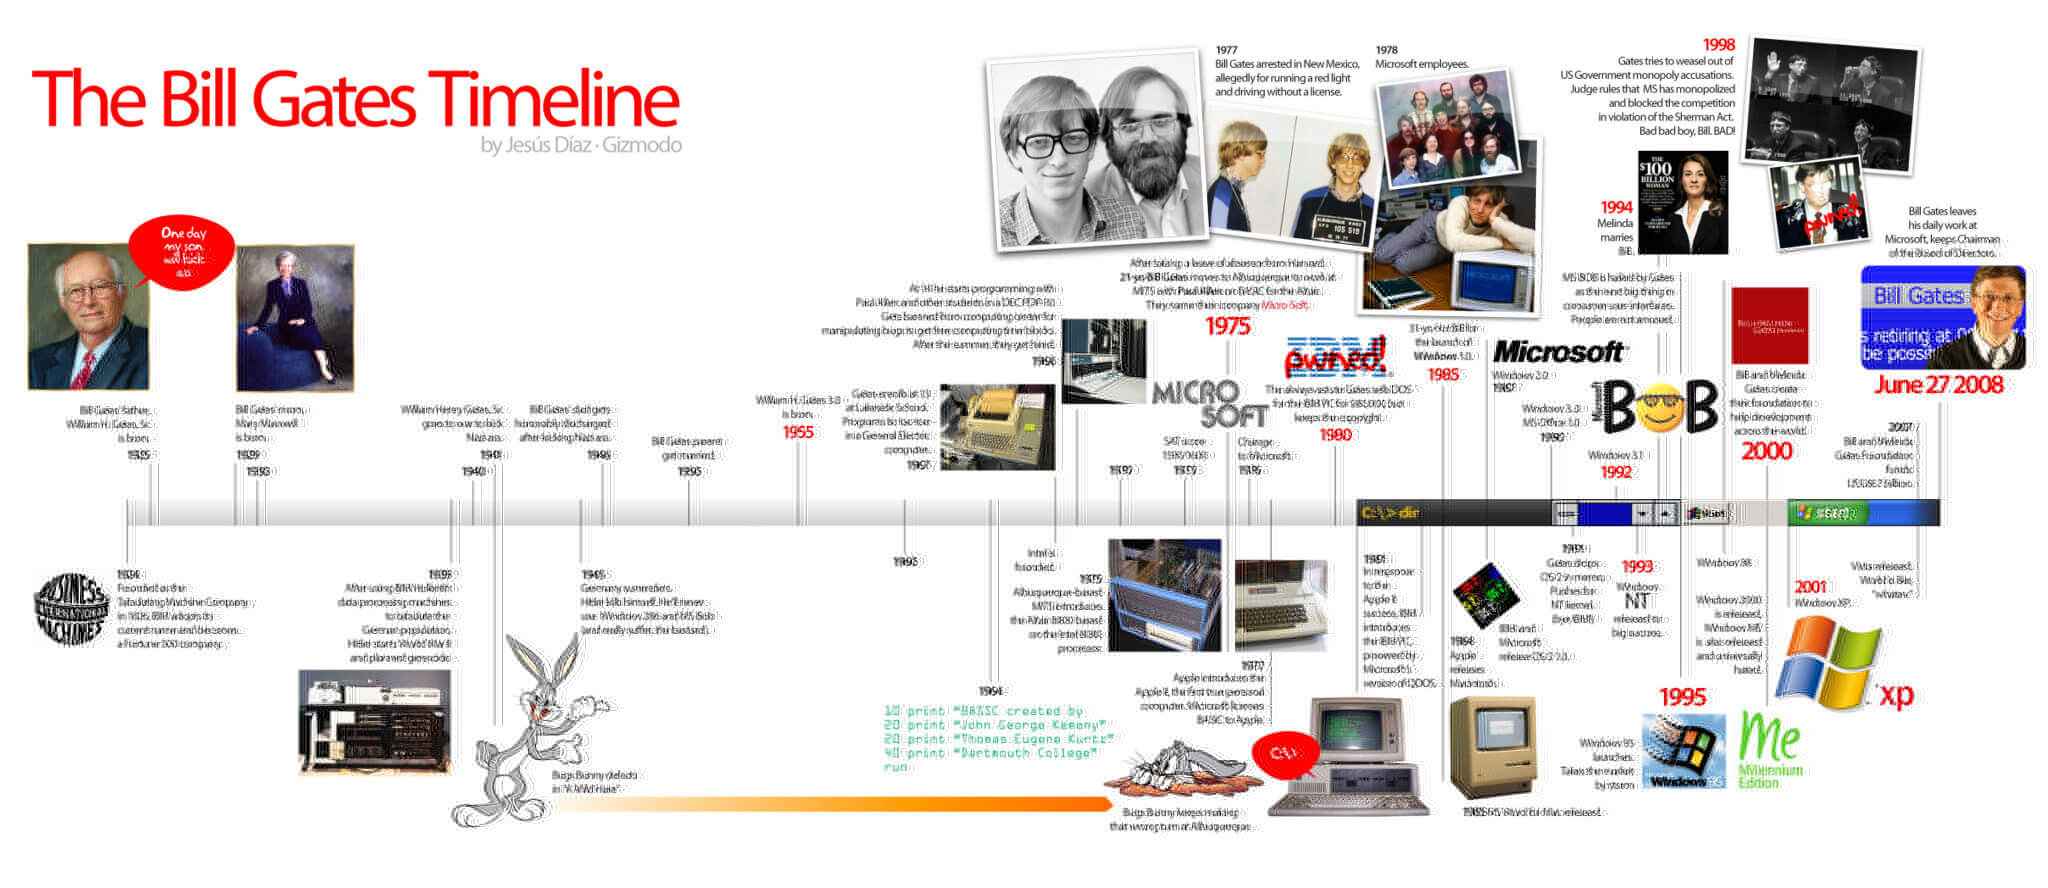 Historical Timeline Charts Related To Computer Electronics Techjini Printed Circuit Board My Version Of A Working